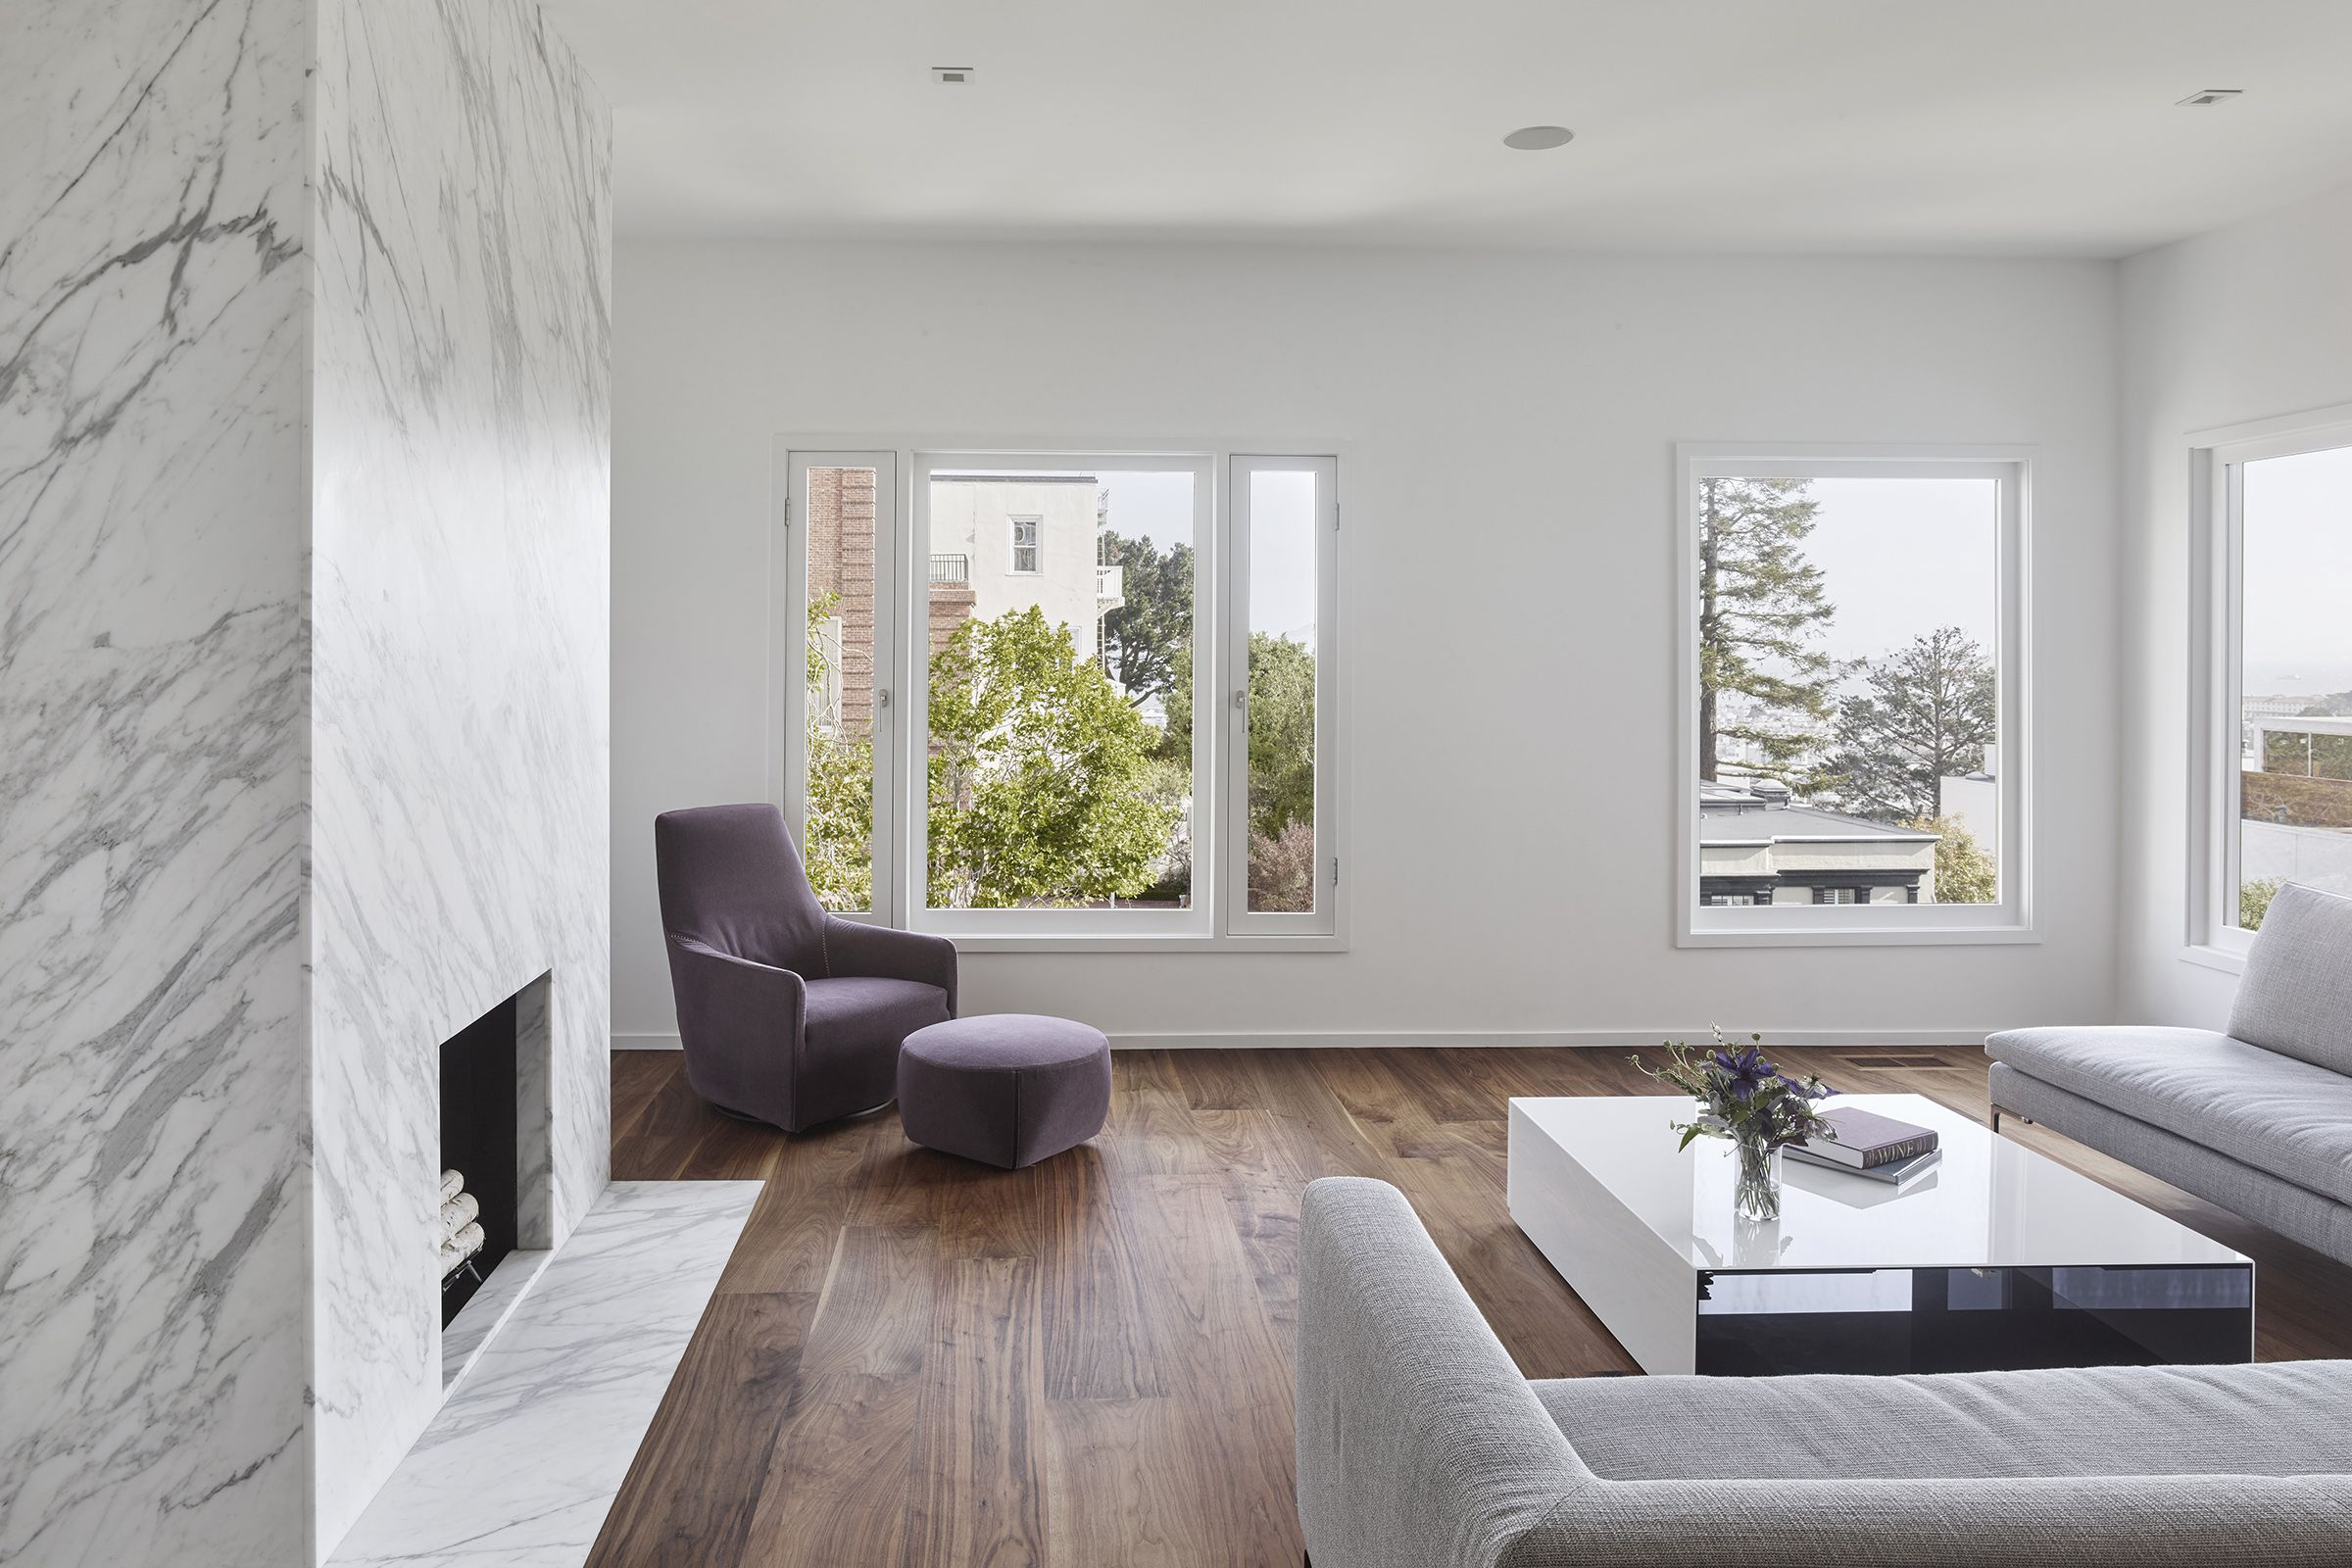 Pacific heights residence edmonds lee architects fireplaces in